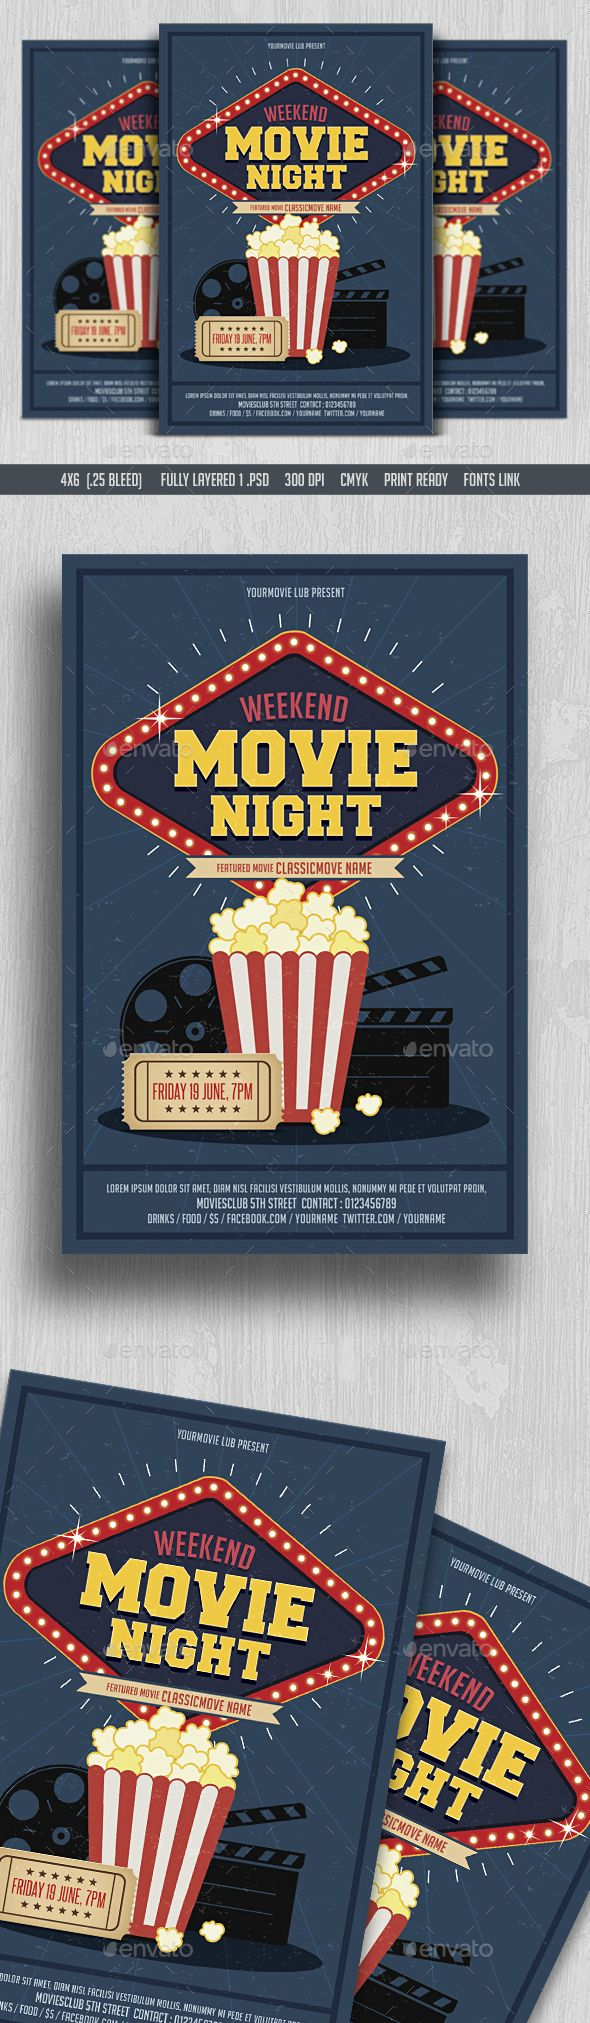 movie night flyer pinterest flyer template template and movie